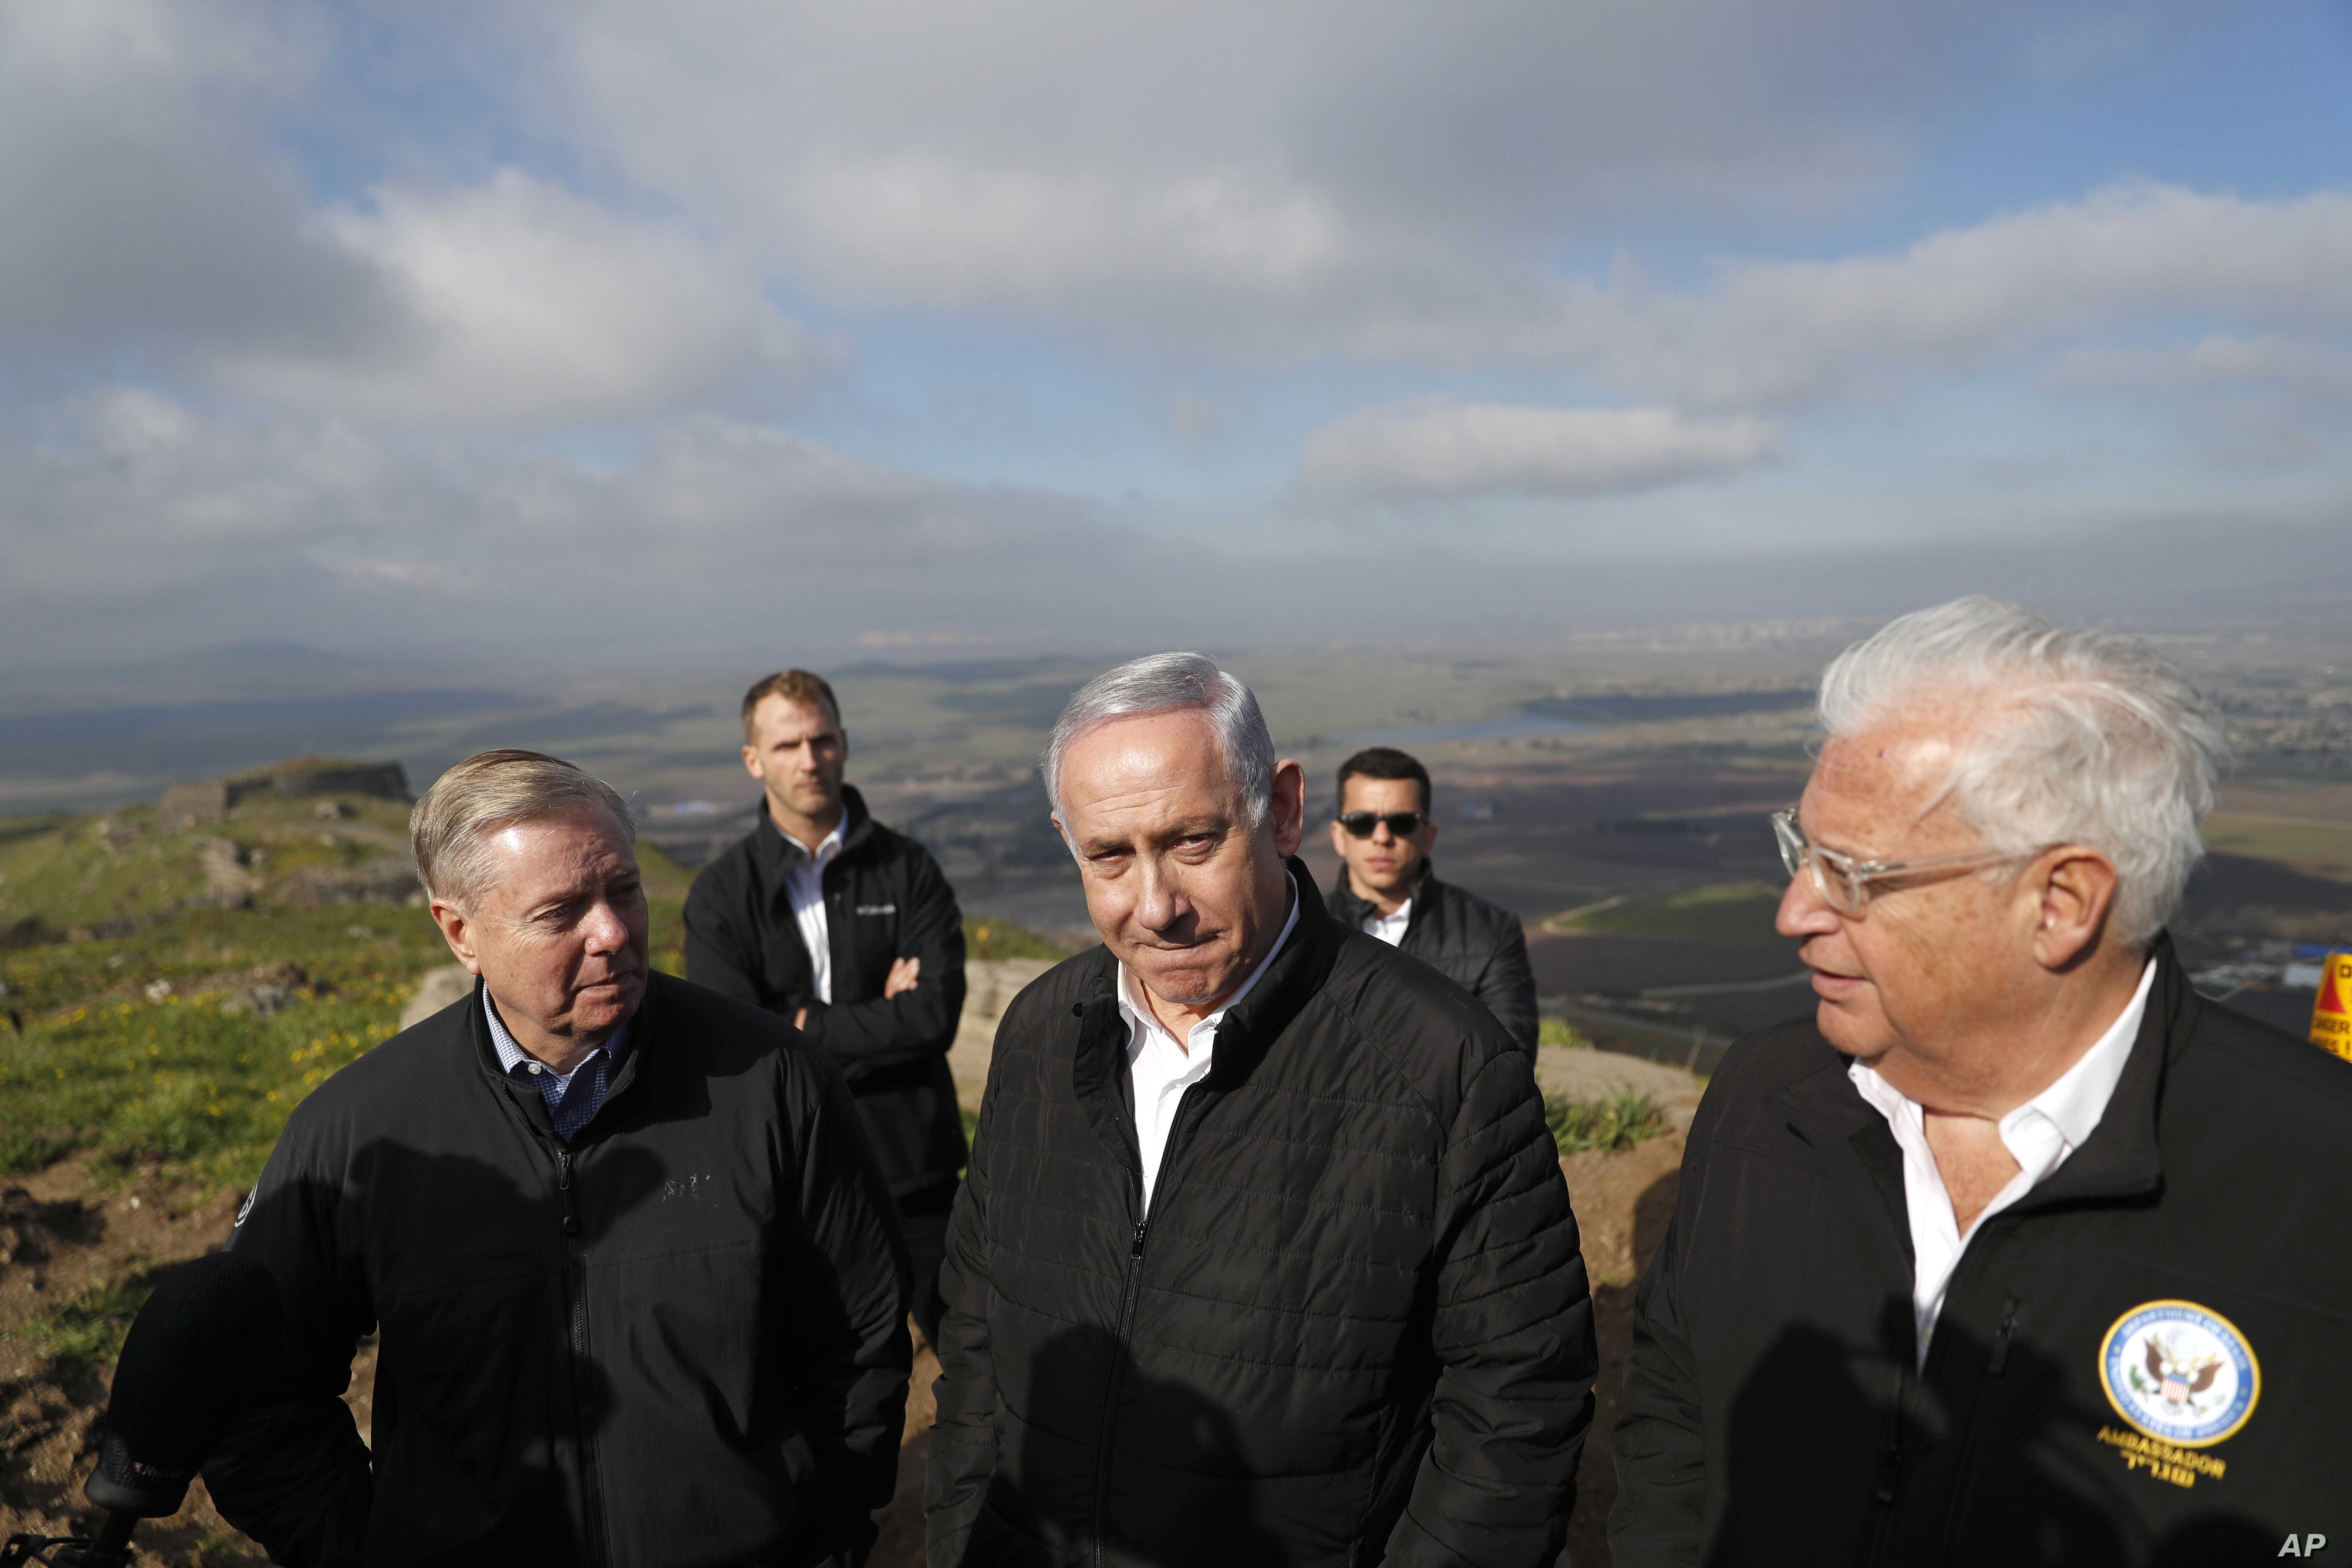 US to Redraw Maps to Show Golan Heights as Israeli Territory | Voice